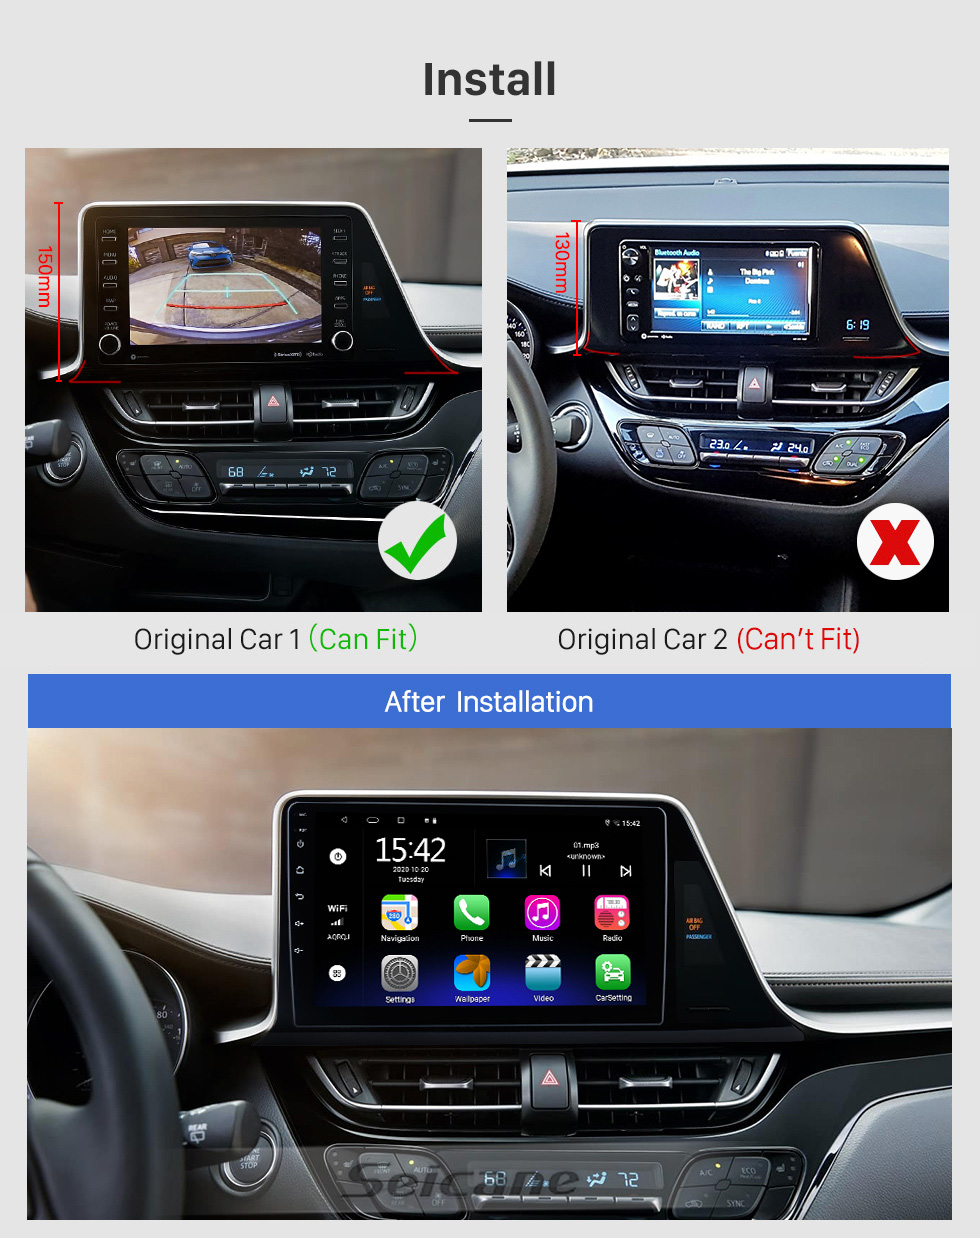 Seicane 9 inch Android 8.1 HD Touch Screen GPS Navigation Radio For 2016-2018 Toyota C-HR LHD Bluetooth 3G Wifi Digital TV Rearview Camera DVR OBD II